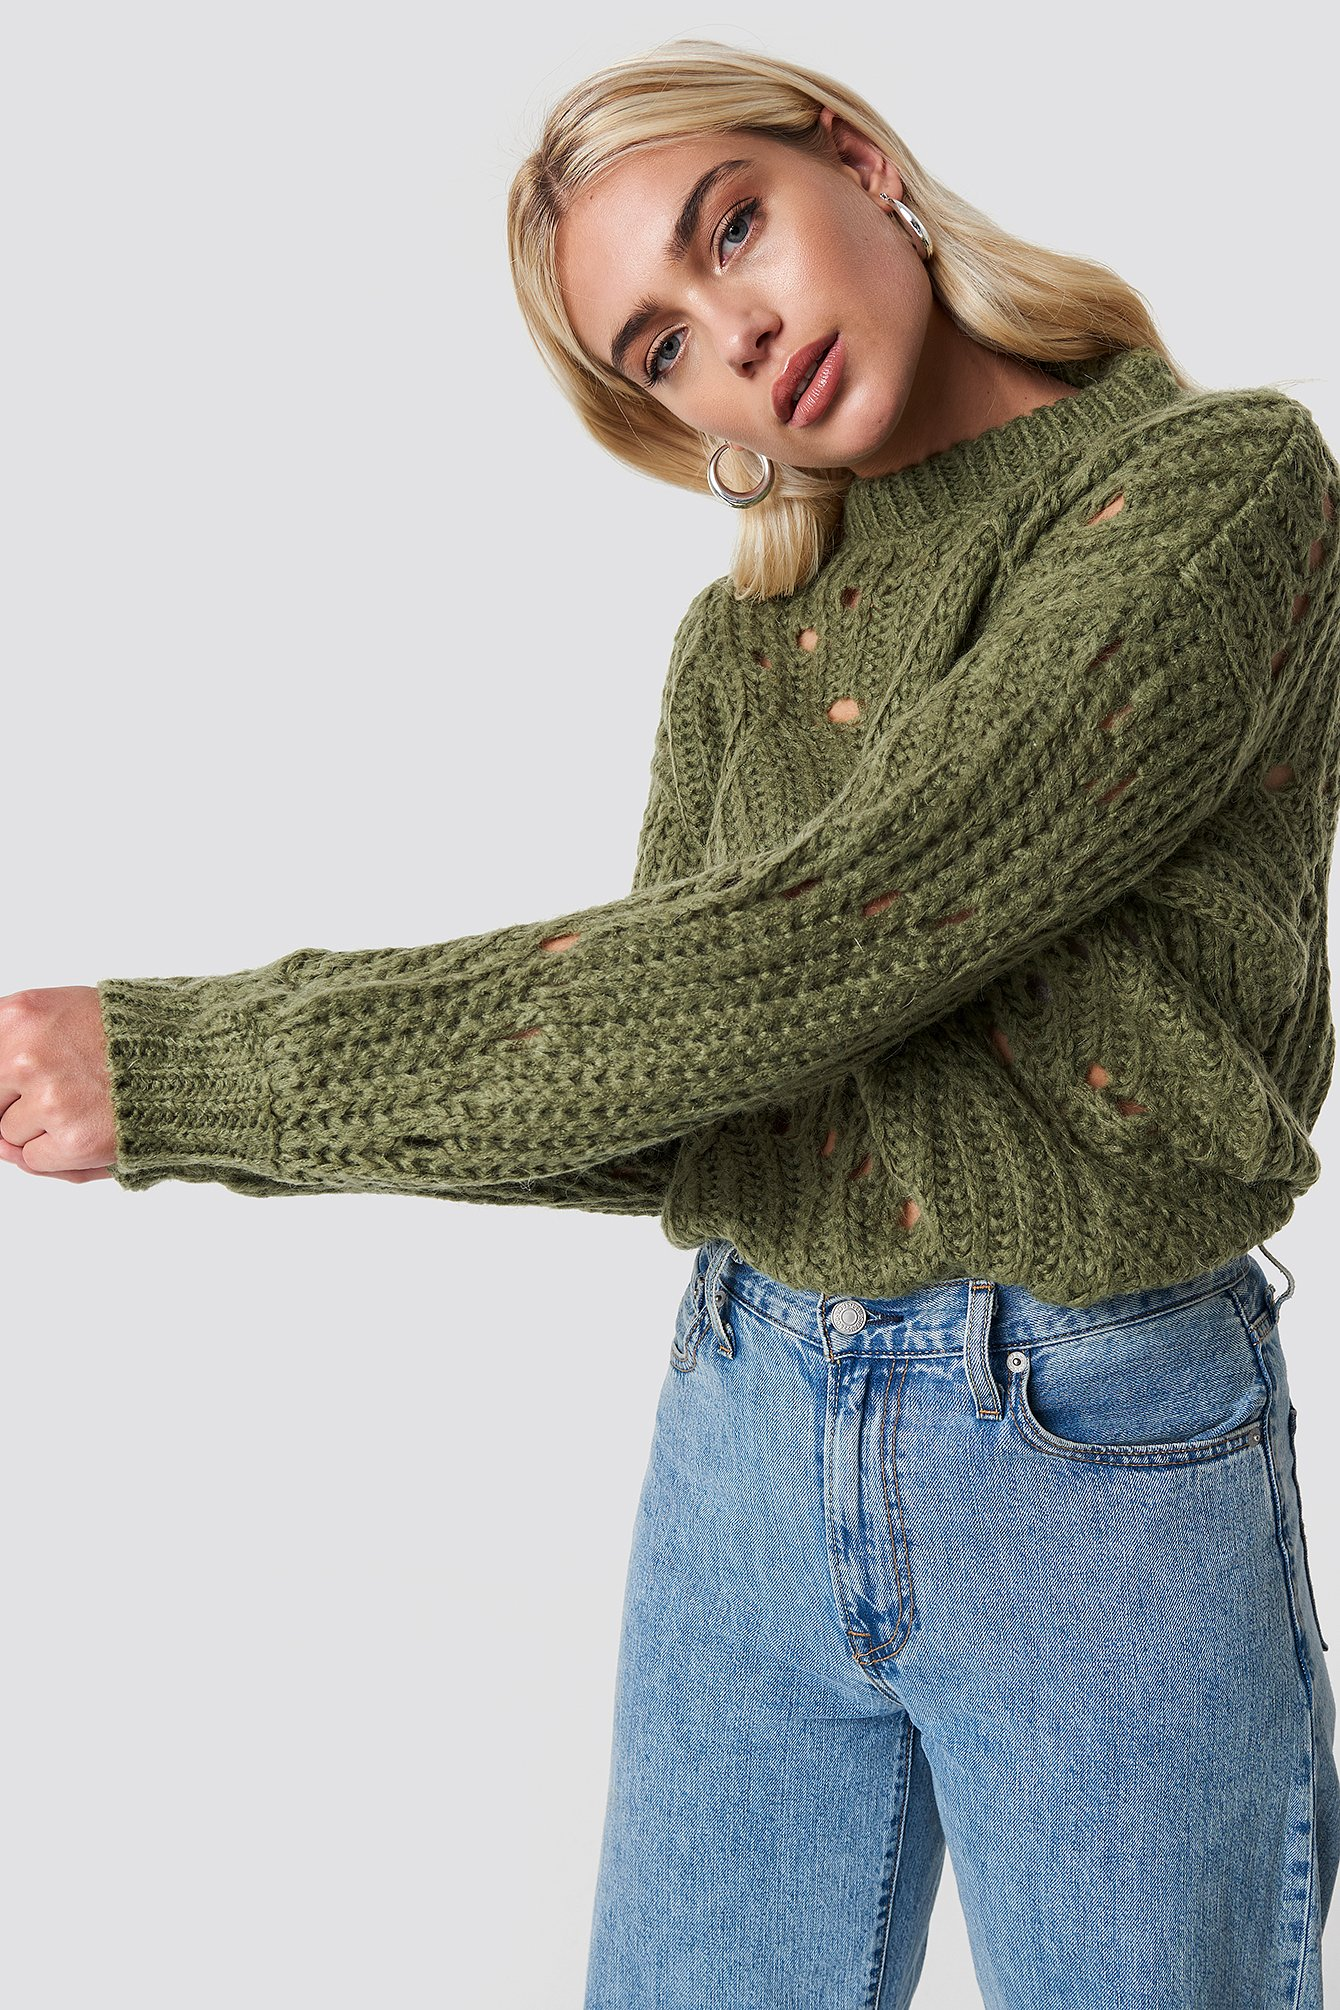 moves -  Fiolina Sweater - Green